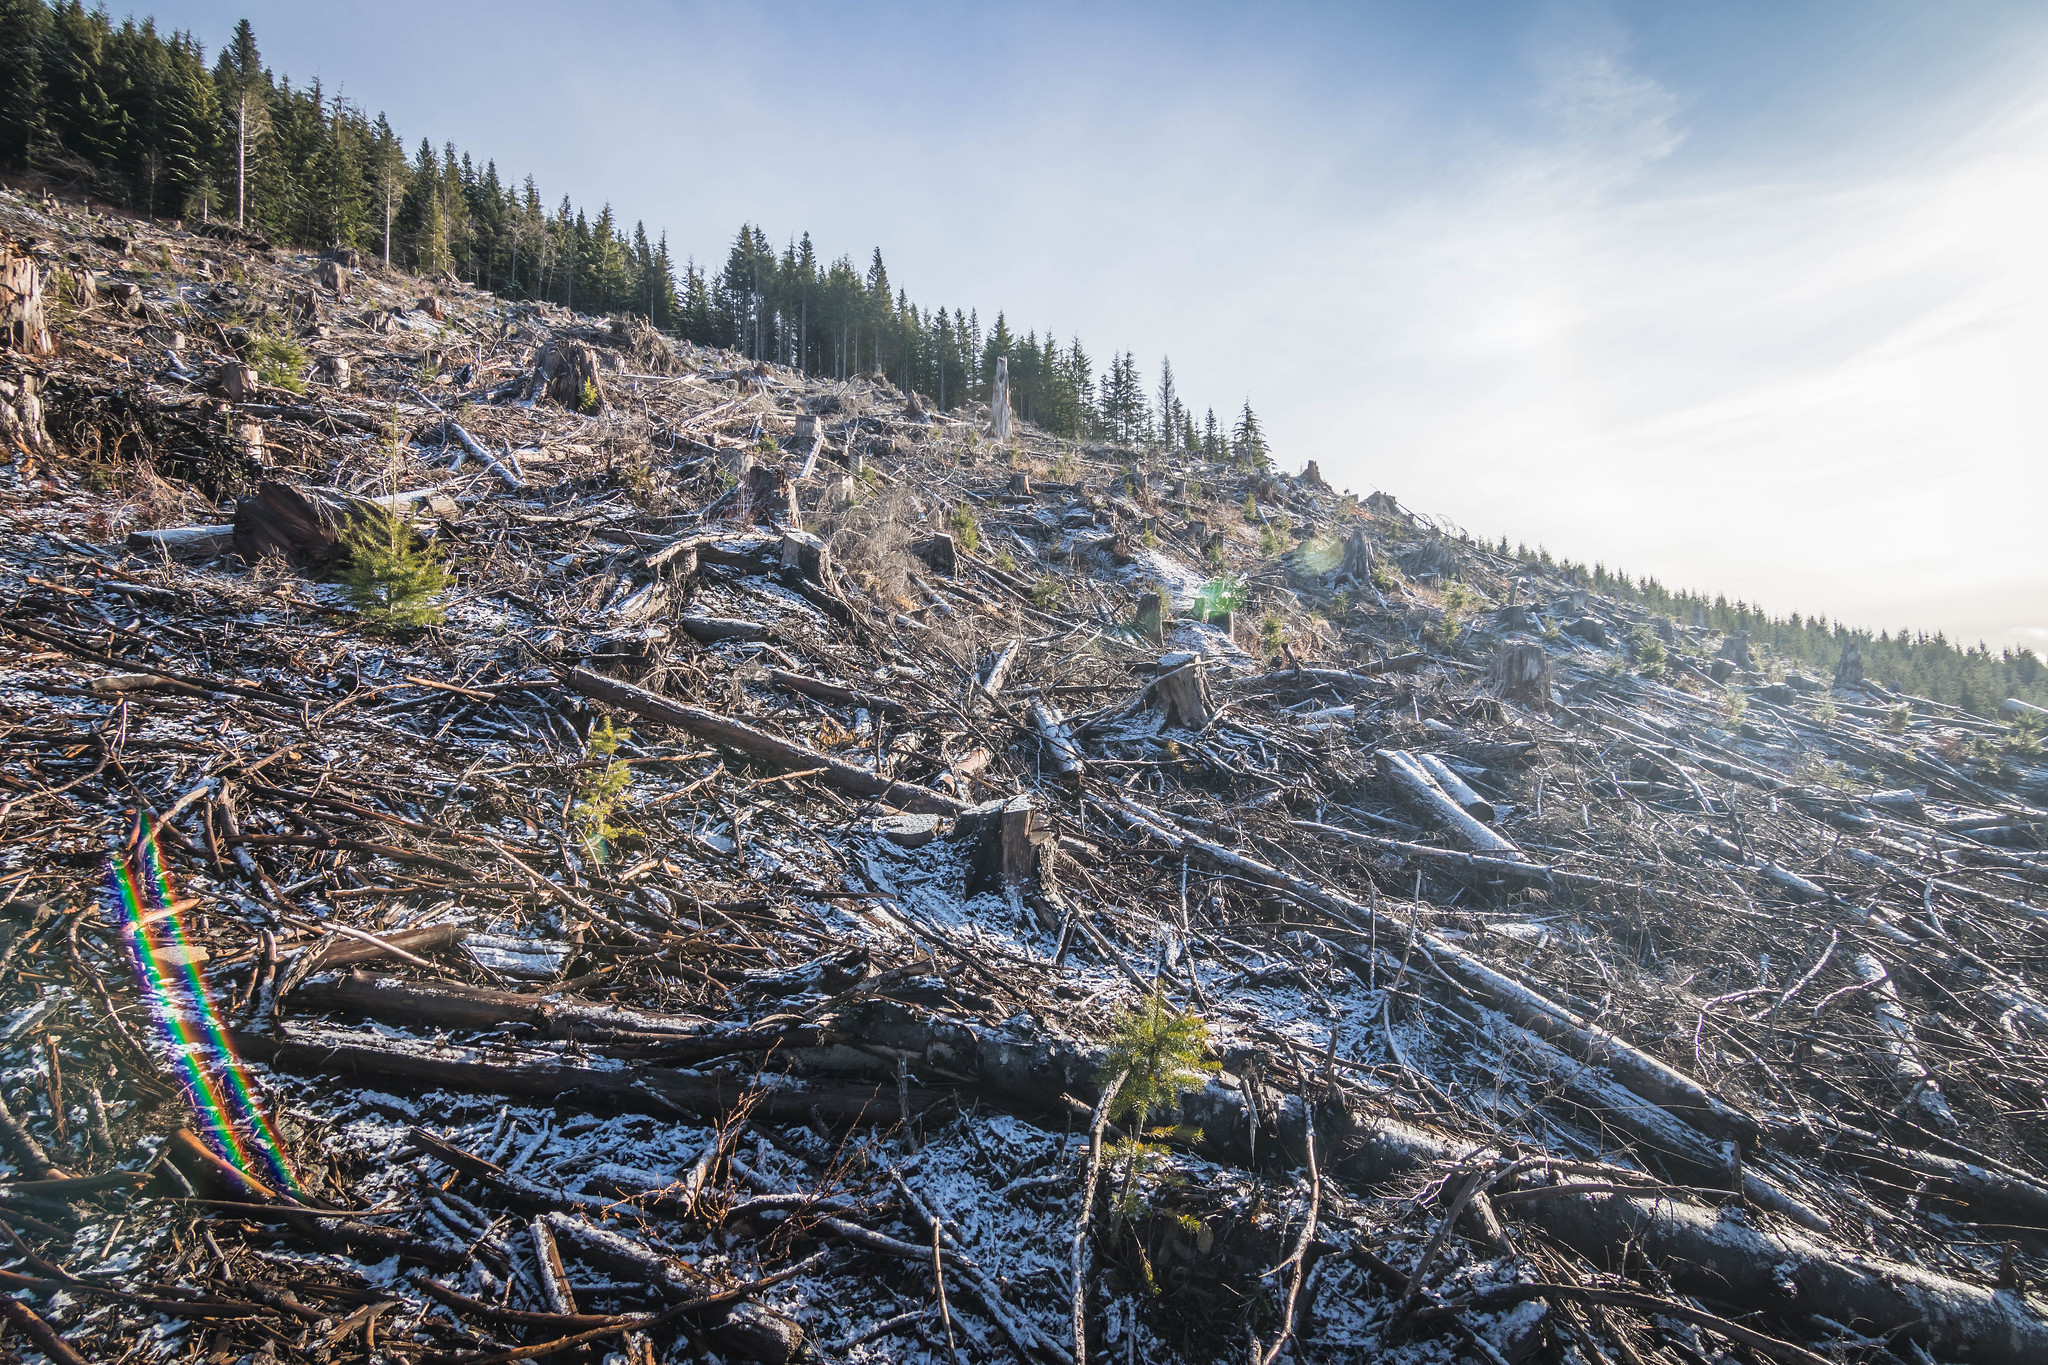 The logging debris